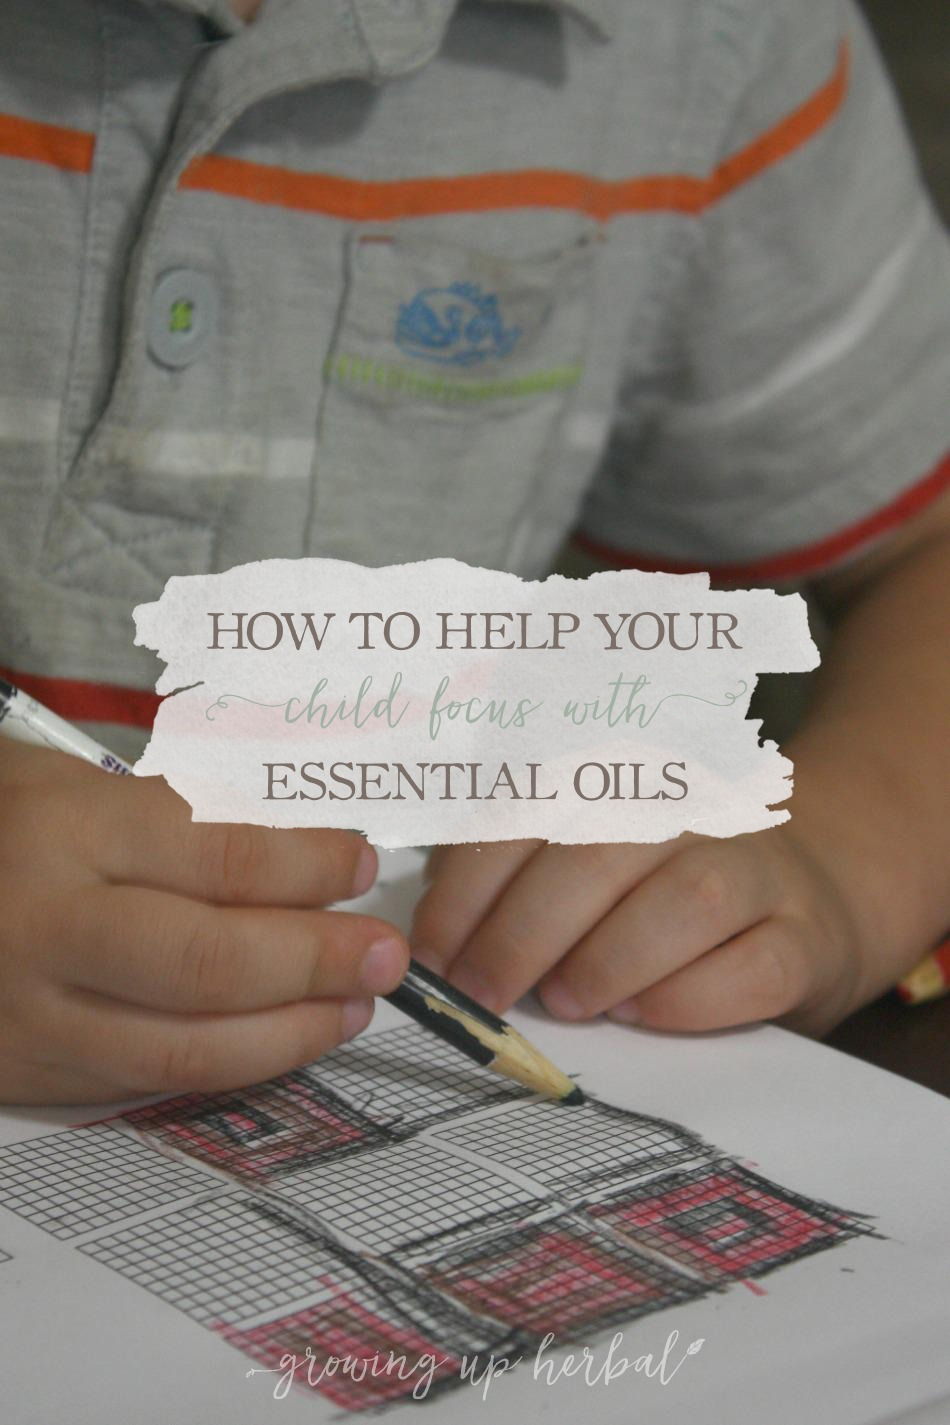 Worksheet Help Your Child Focus how to help your child focus using essential oils growing up herbal learn how